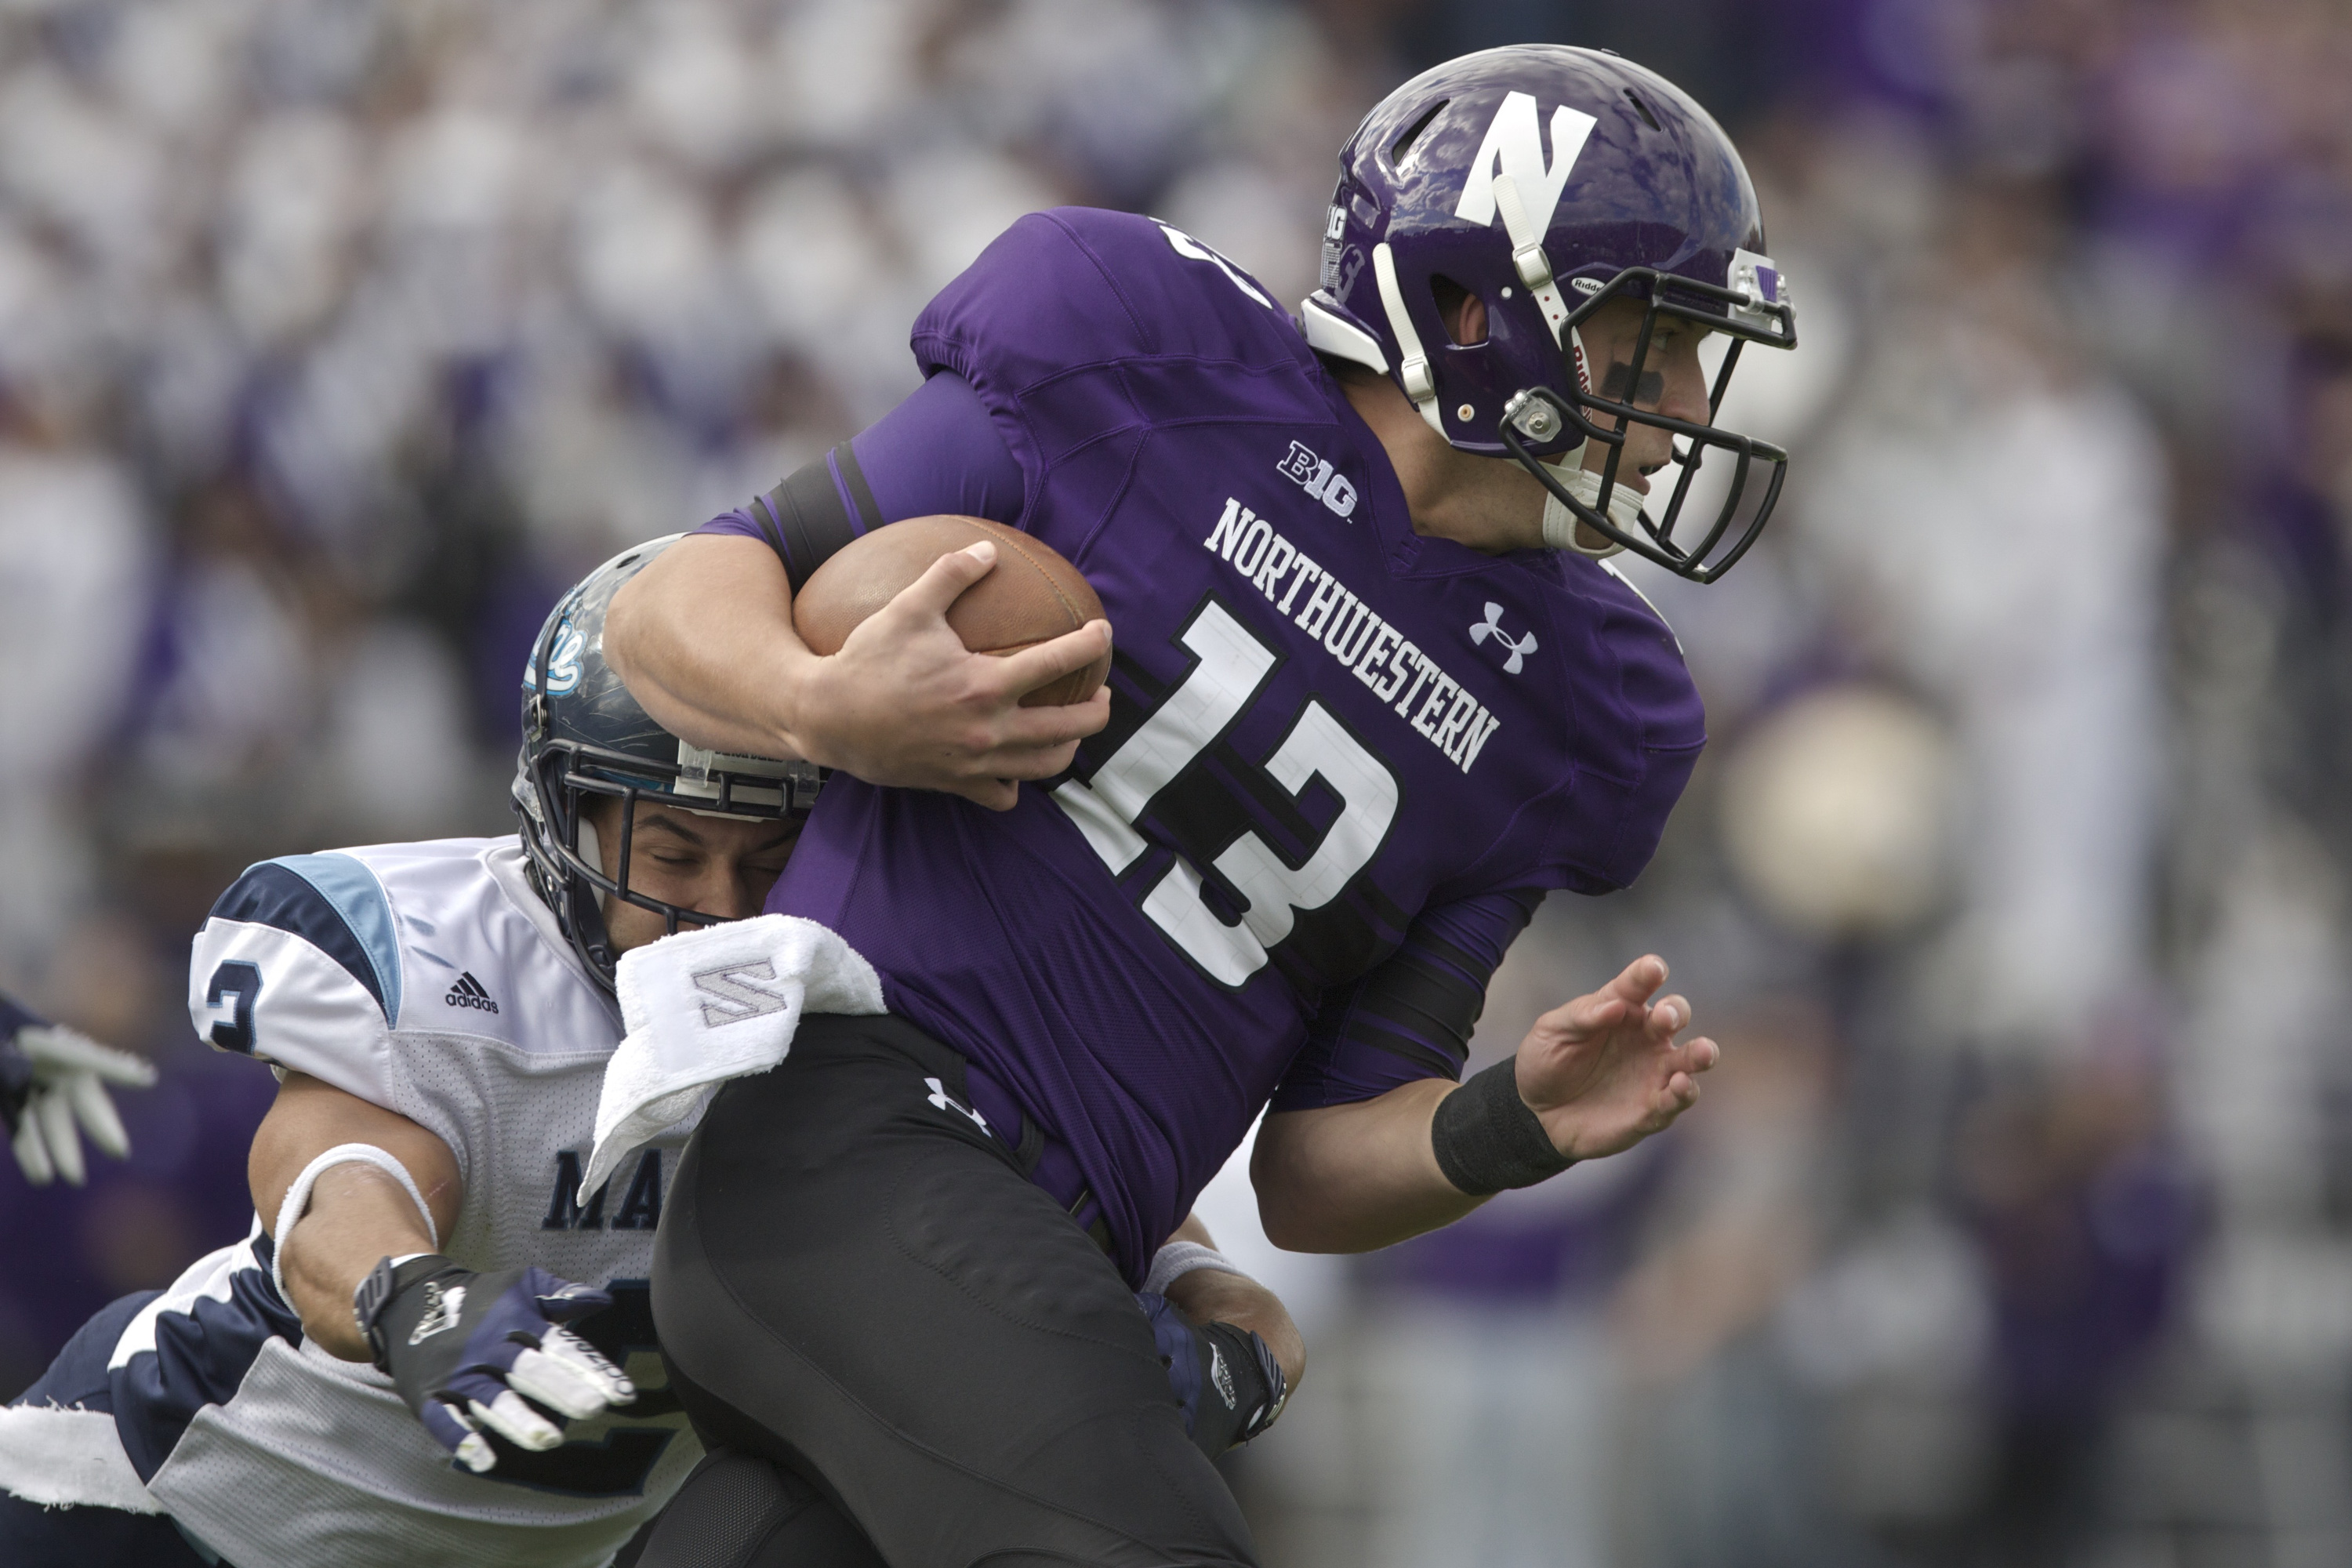 Cabrinni Goncalvesof the Maine Black Bears tackles Trevor Siemianof the Northwestern Wildcats during their college football game at Ryan Field on September 21, 2013 in Evanston, Illinois.